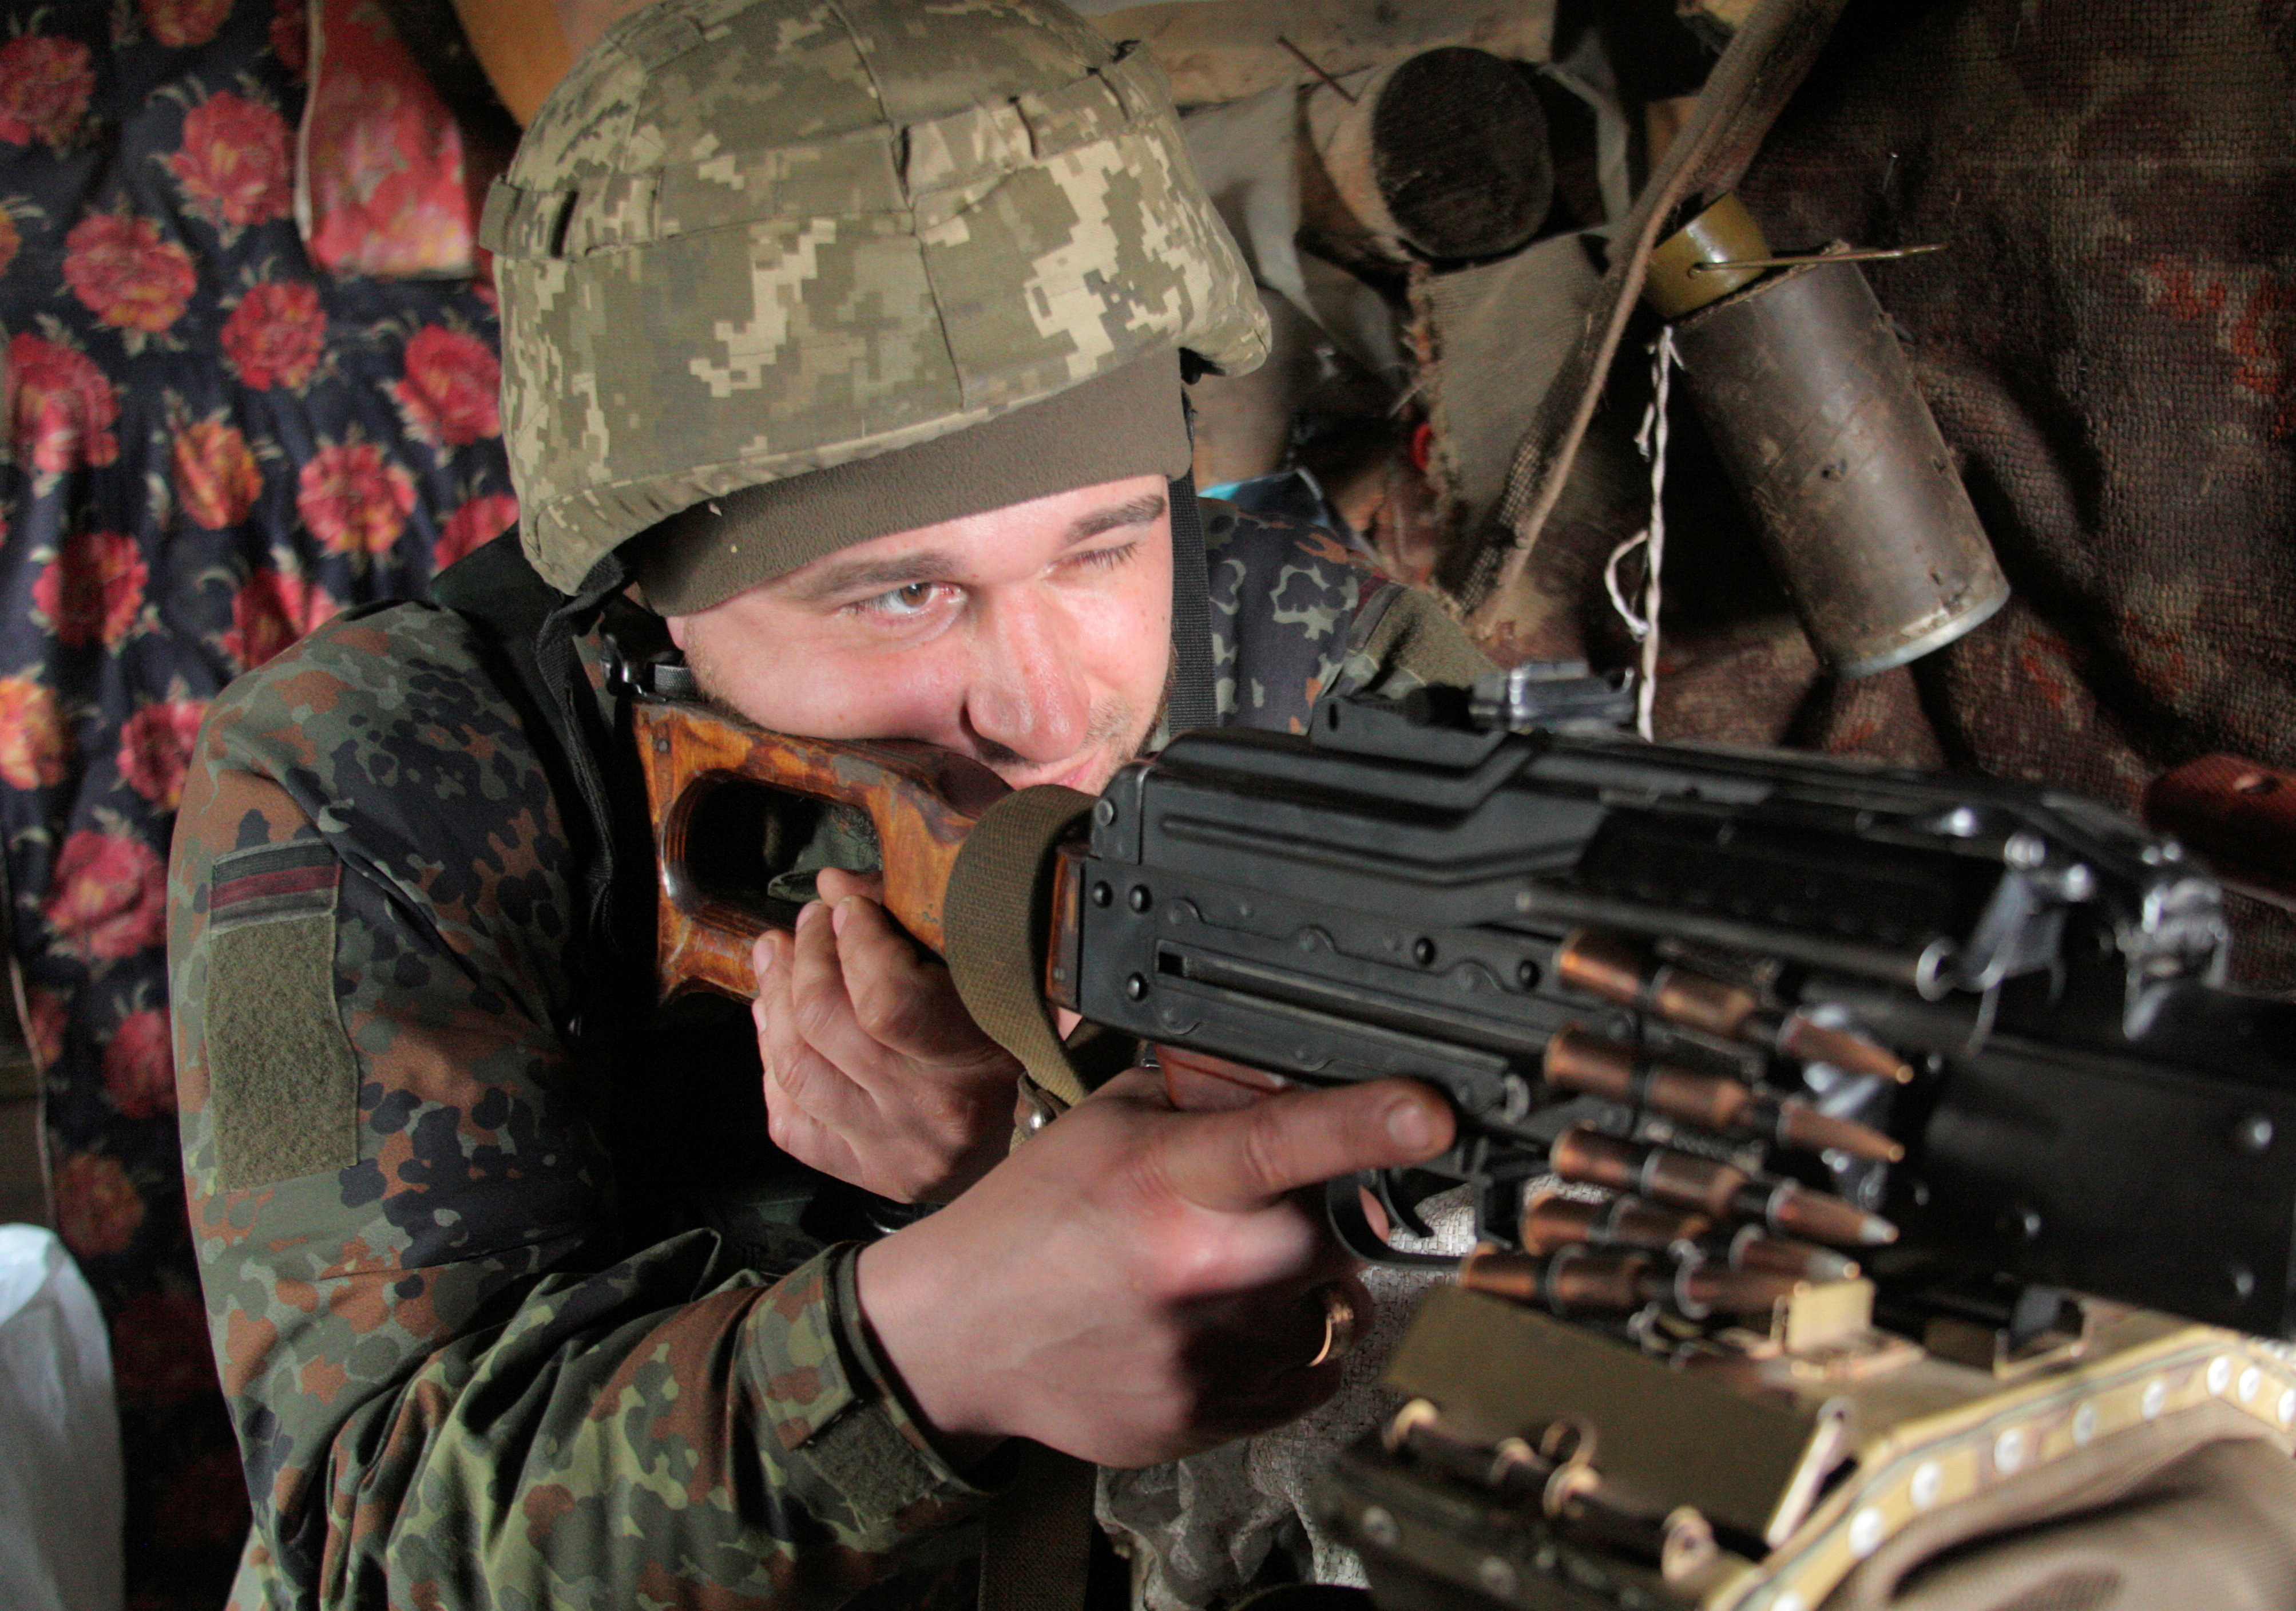 A service member of the Ukrainian armed forces points a weapon at fighting positions on the line of separation near the rebel-controlled city of Donetsk, Ukraine April 16, 2021. REUTERS/Serhiy Takhmazov/File Photo